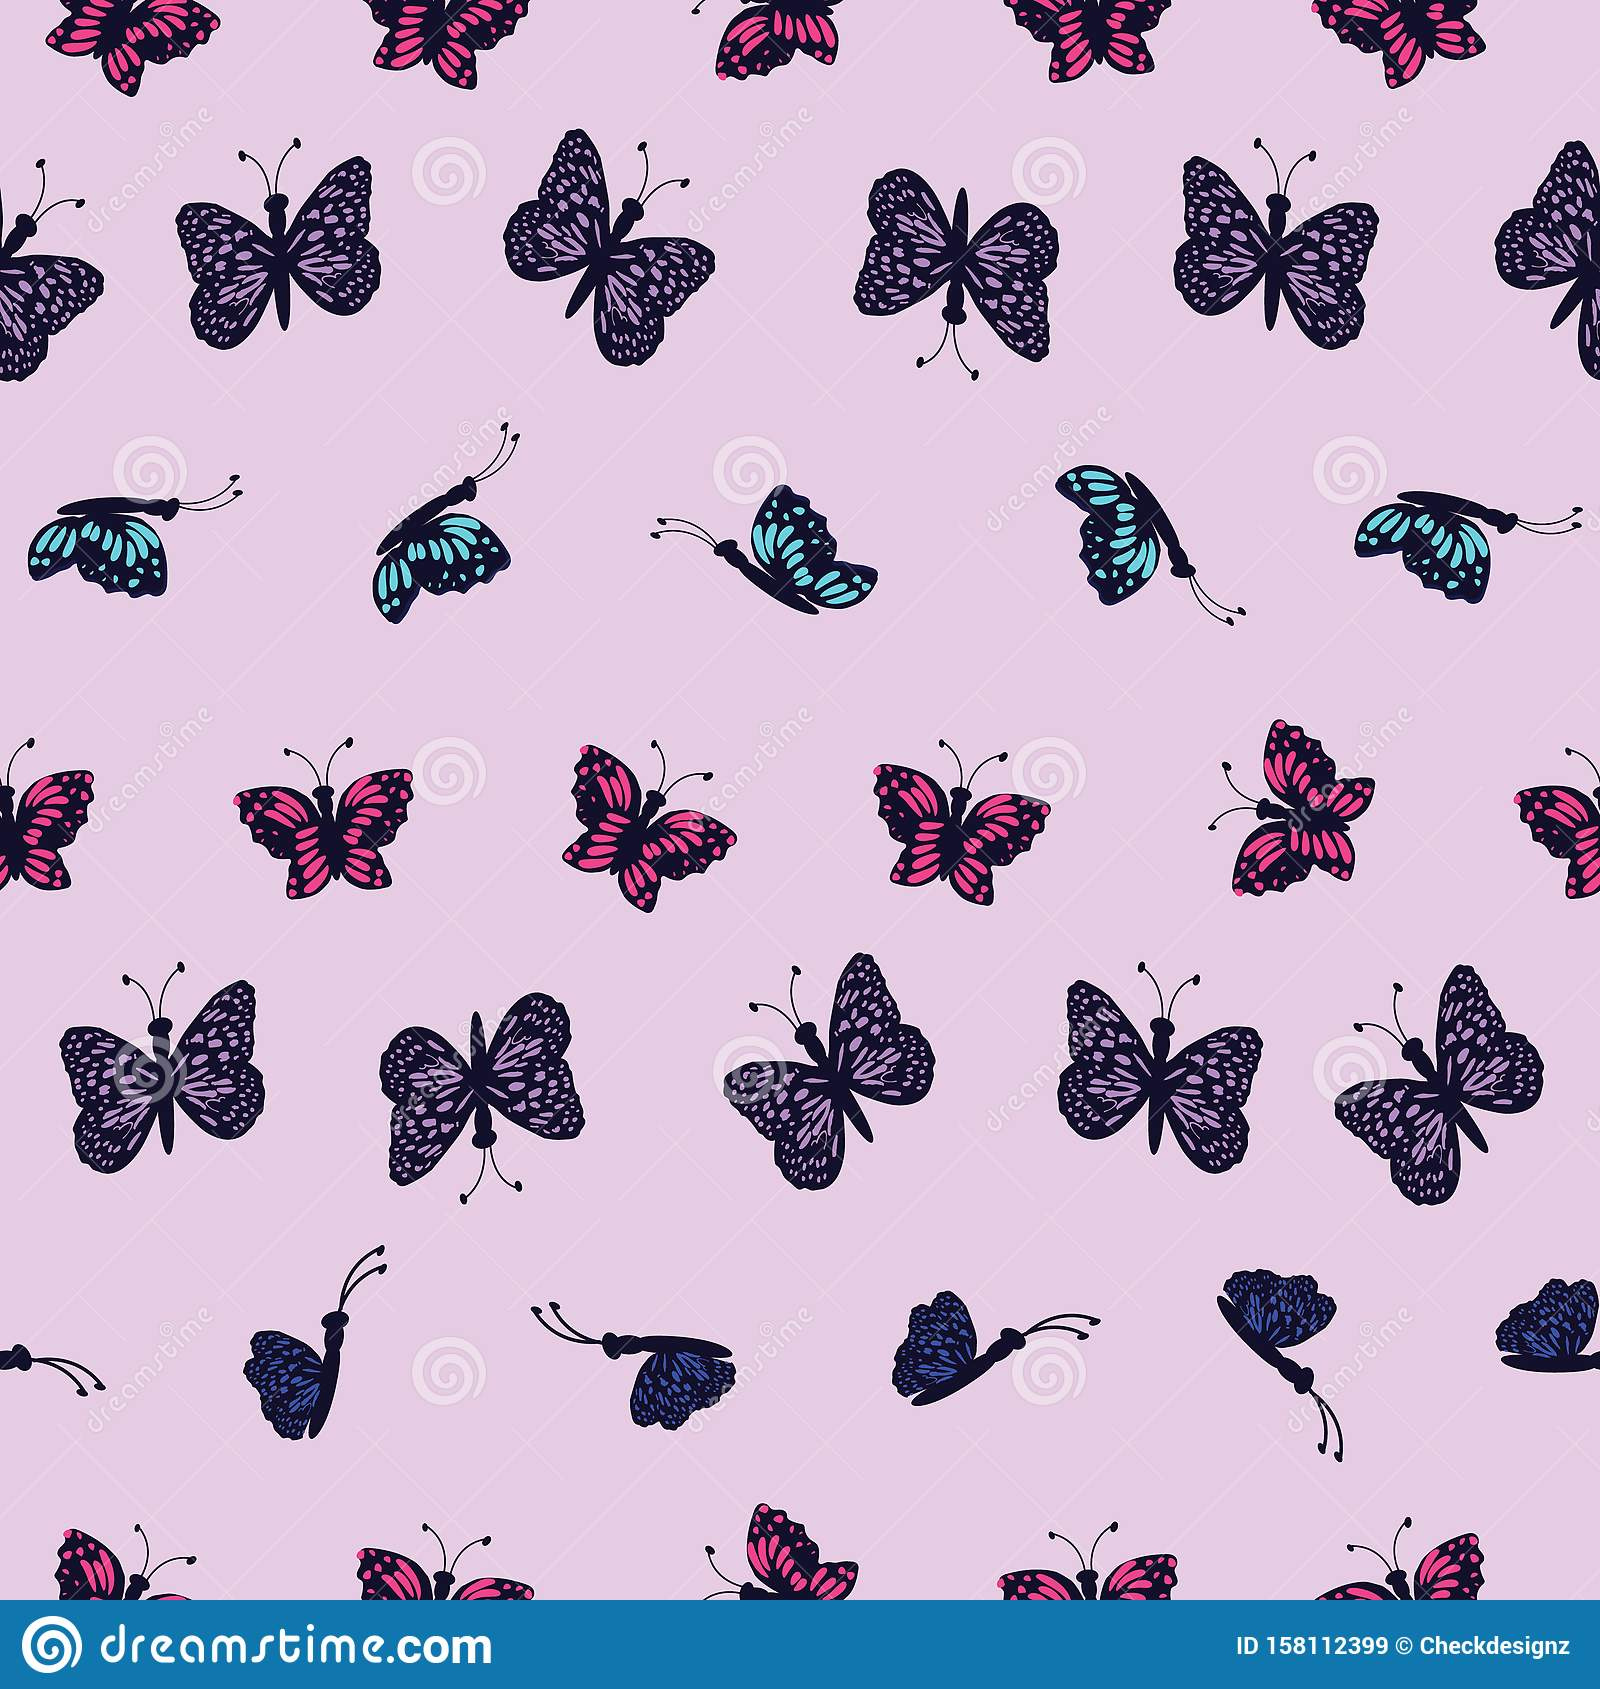 Hand drawn multi colored butterflies on a light purple background.